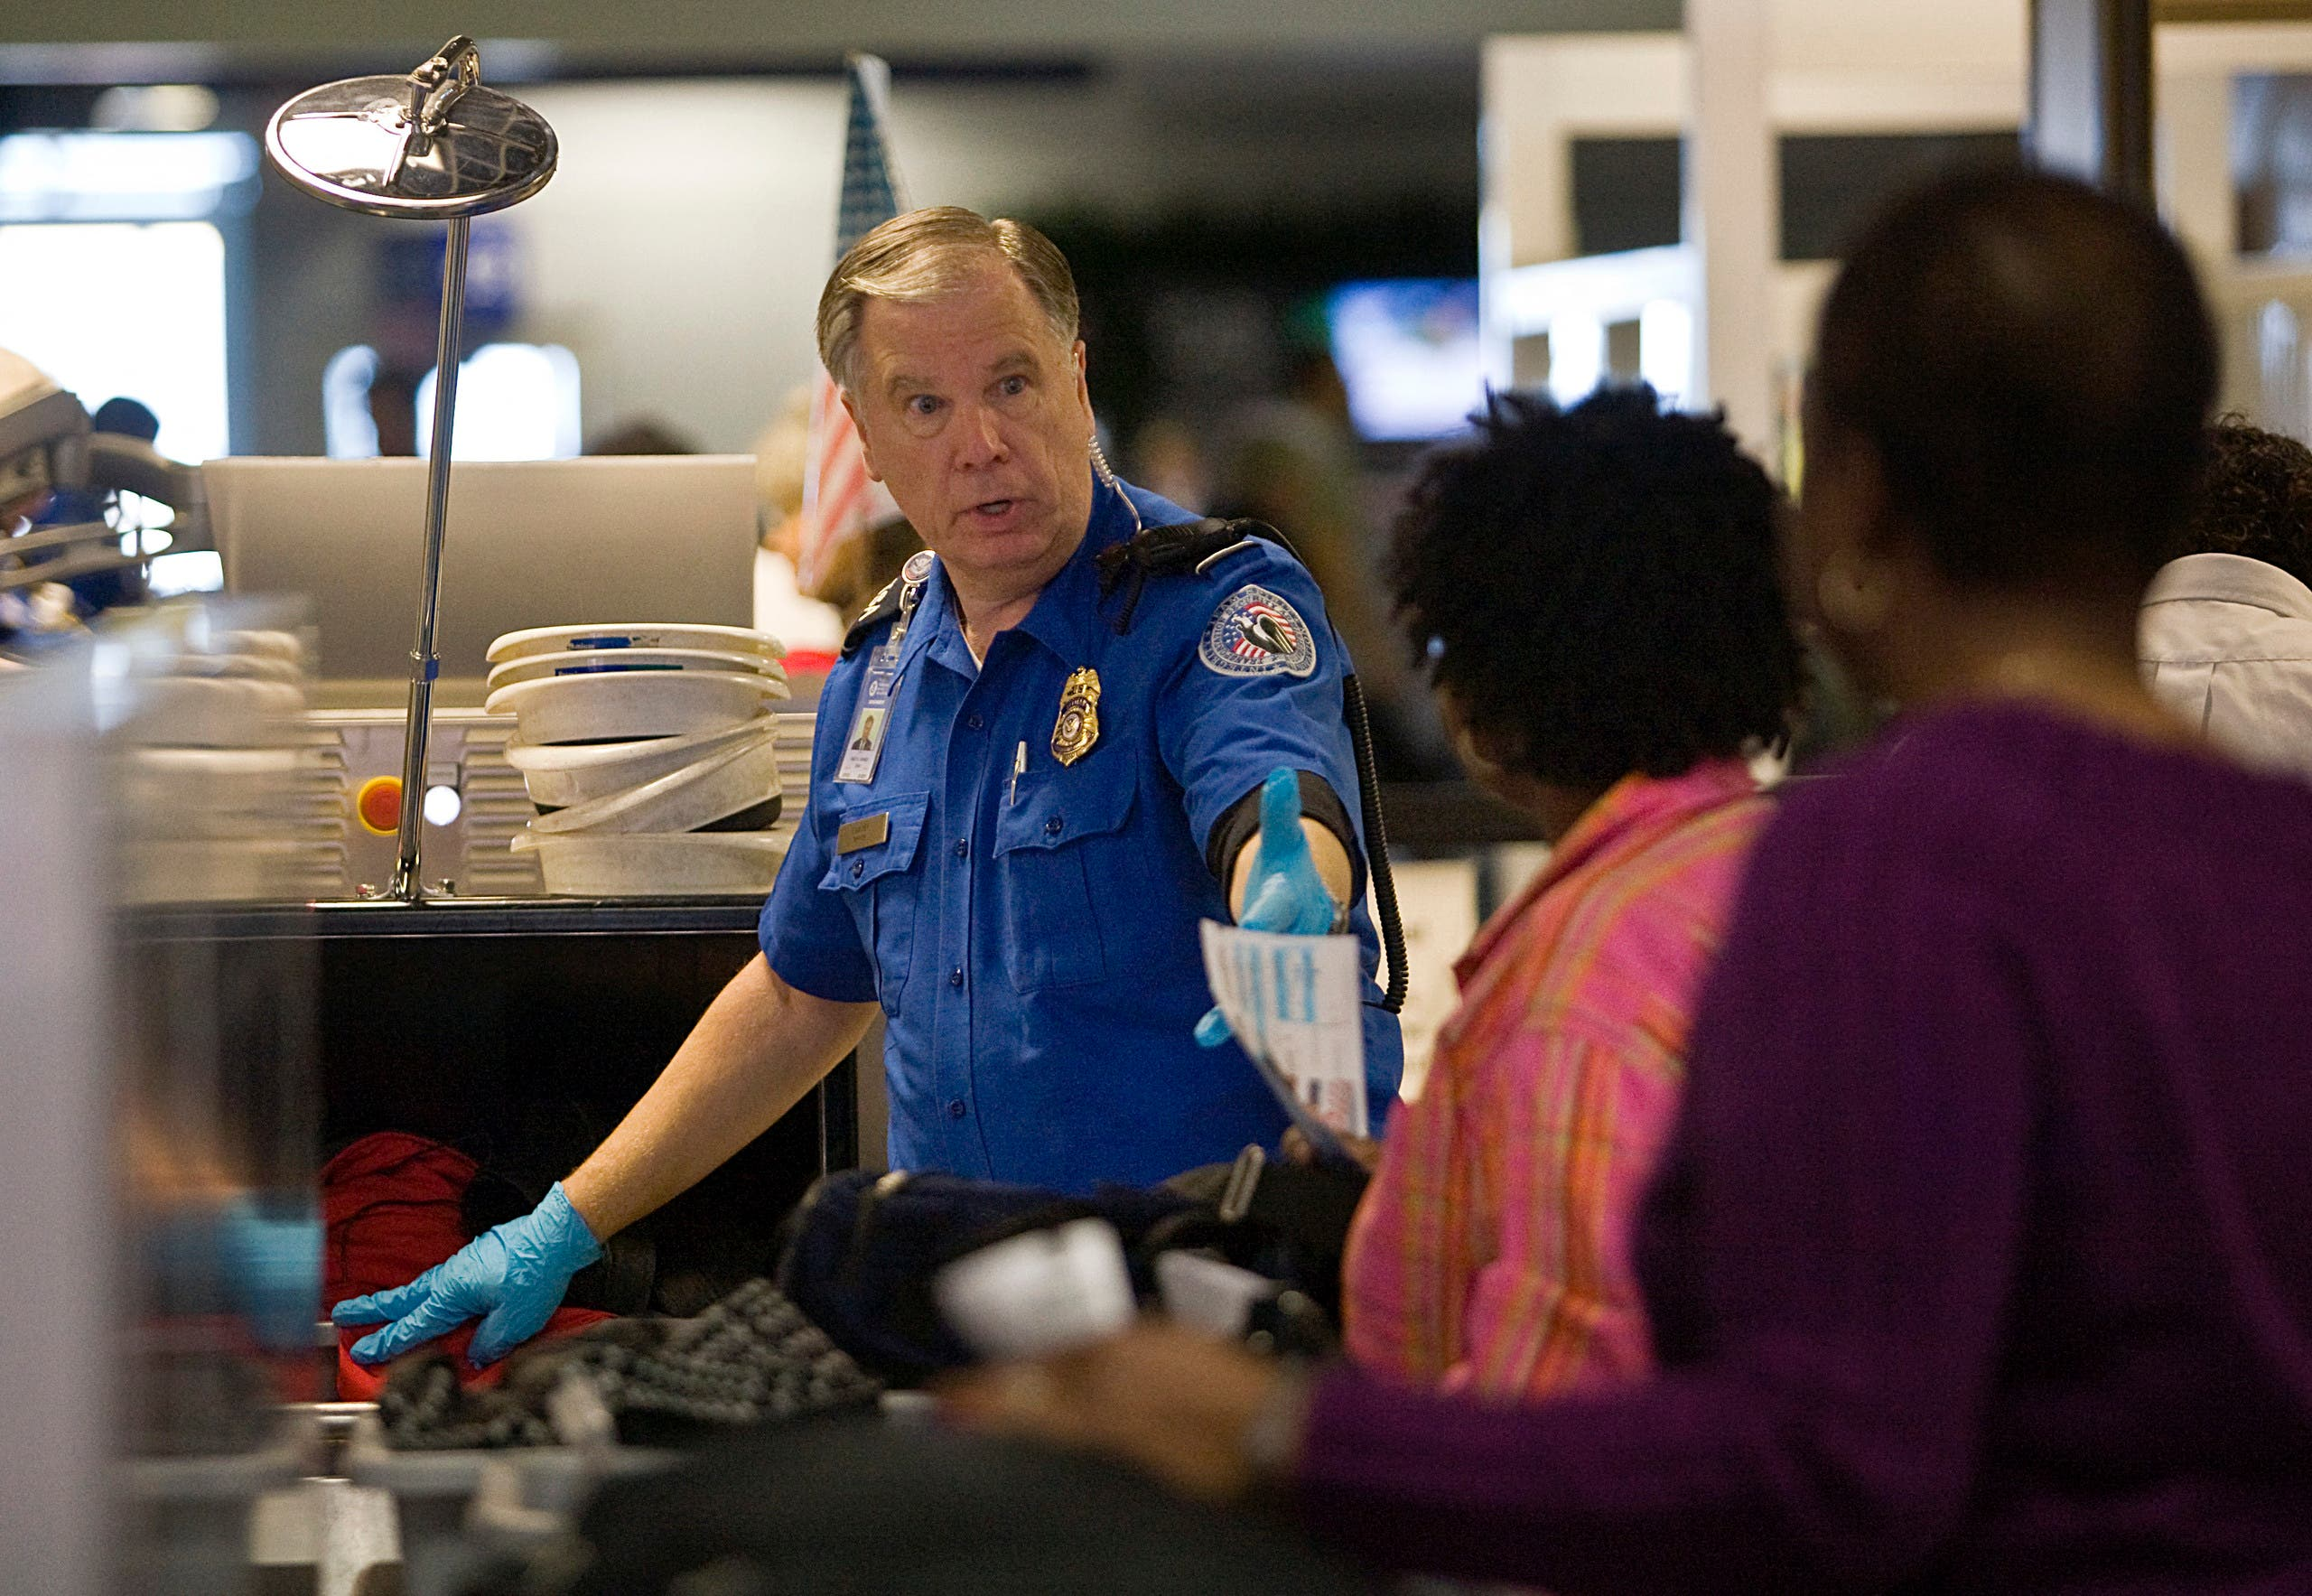 A TSA officer screens airline passengers in Terminal C at Dallas/Fort Worth International Airport December 27, 2009. (AFP)